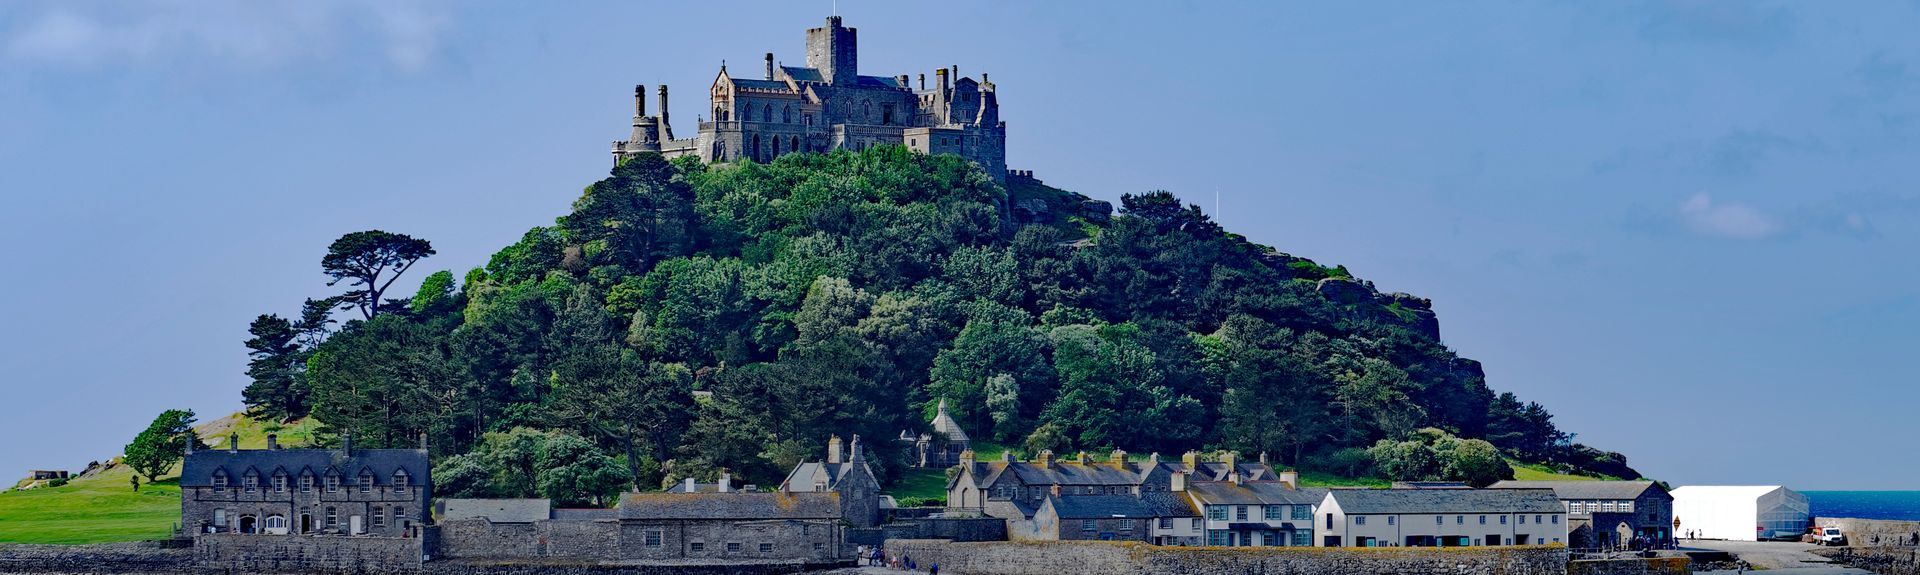 St. Michael's Mount, Marazion, England, United Kingdom